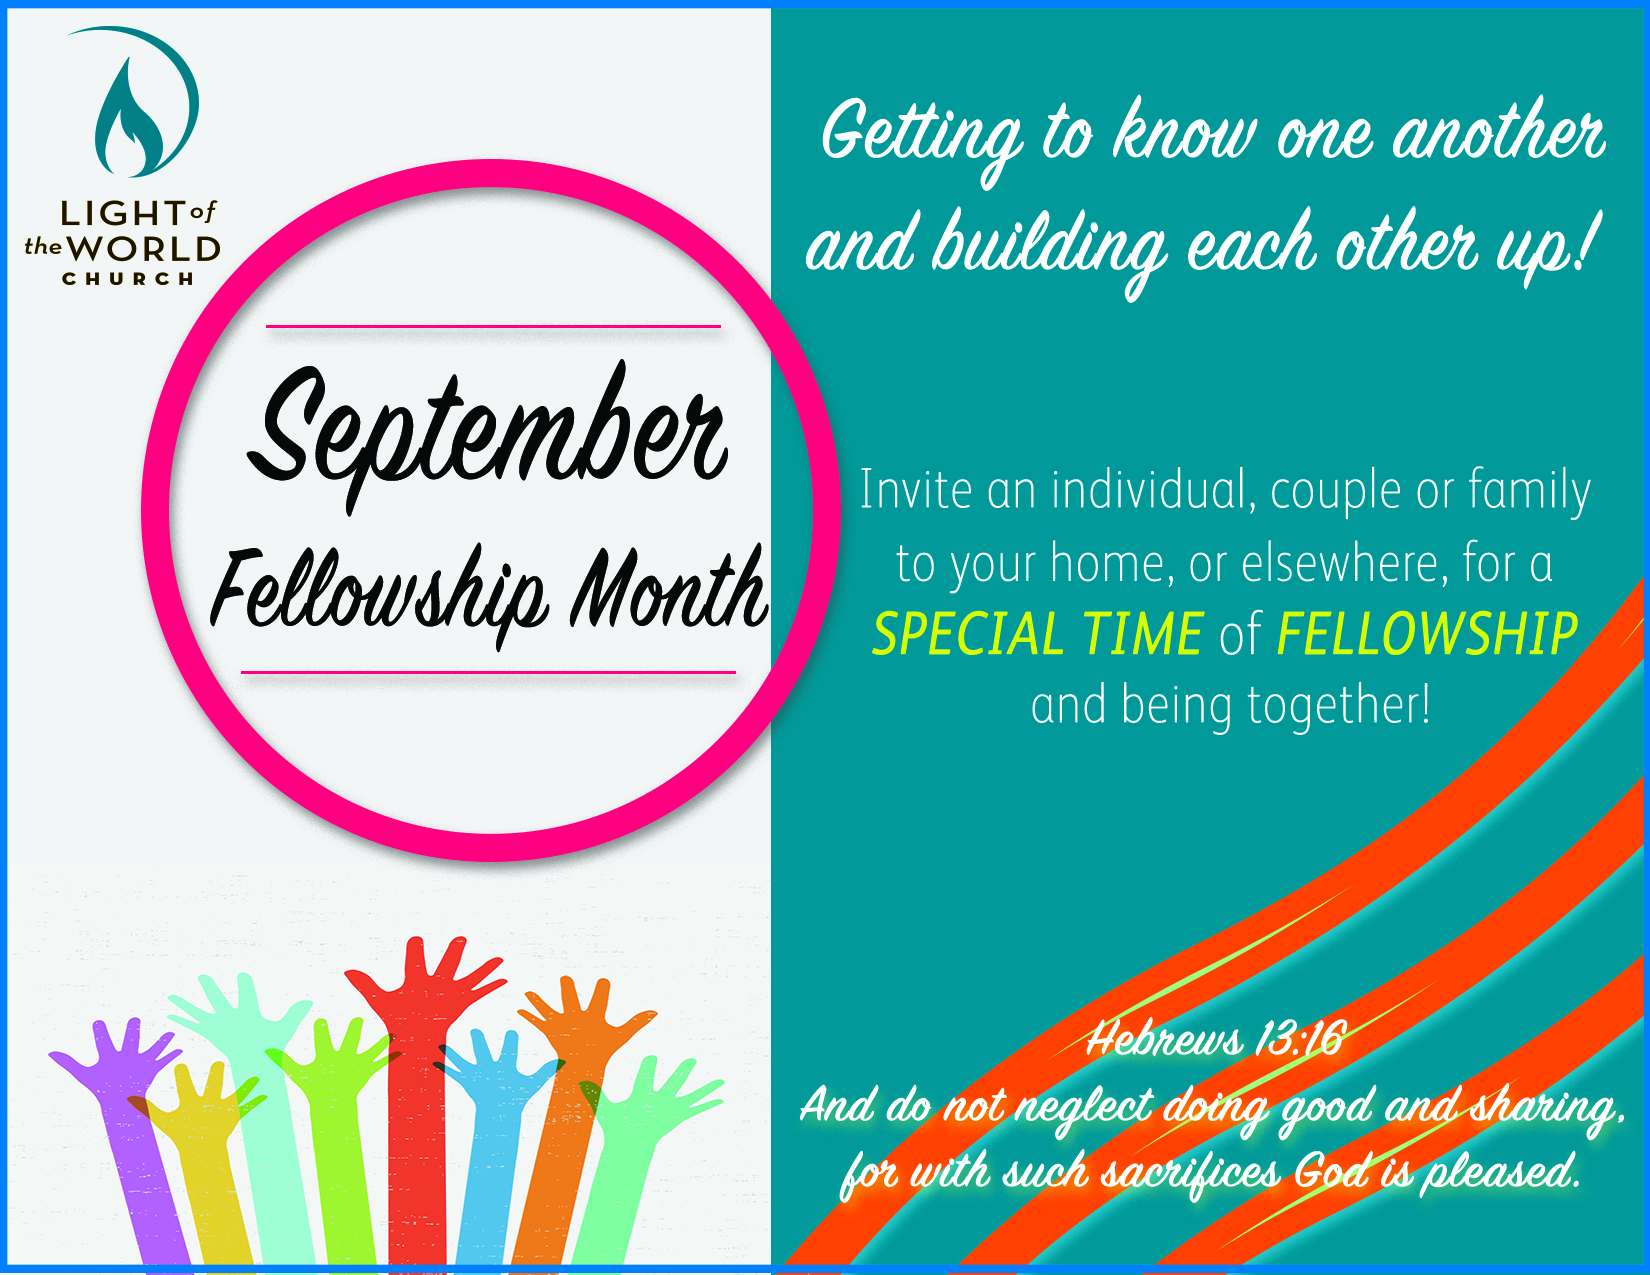 Fellowship mth of Sept